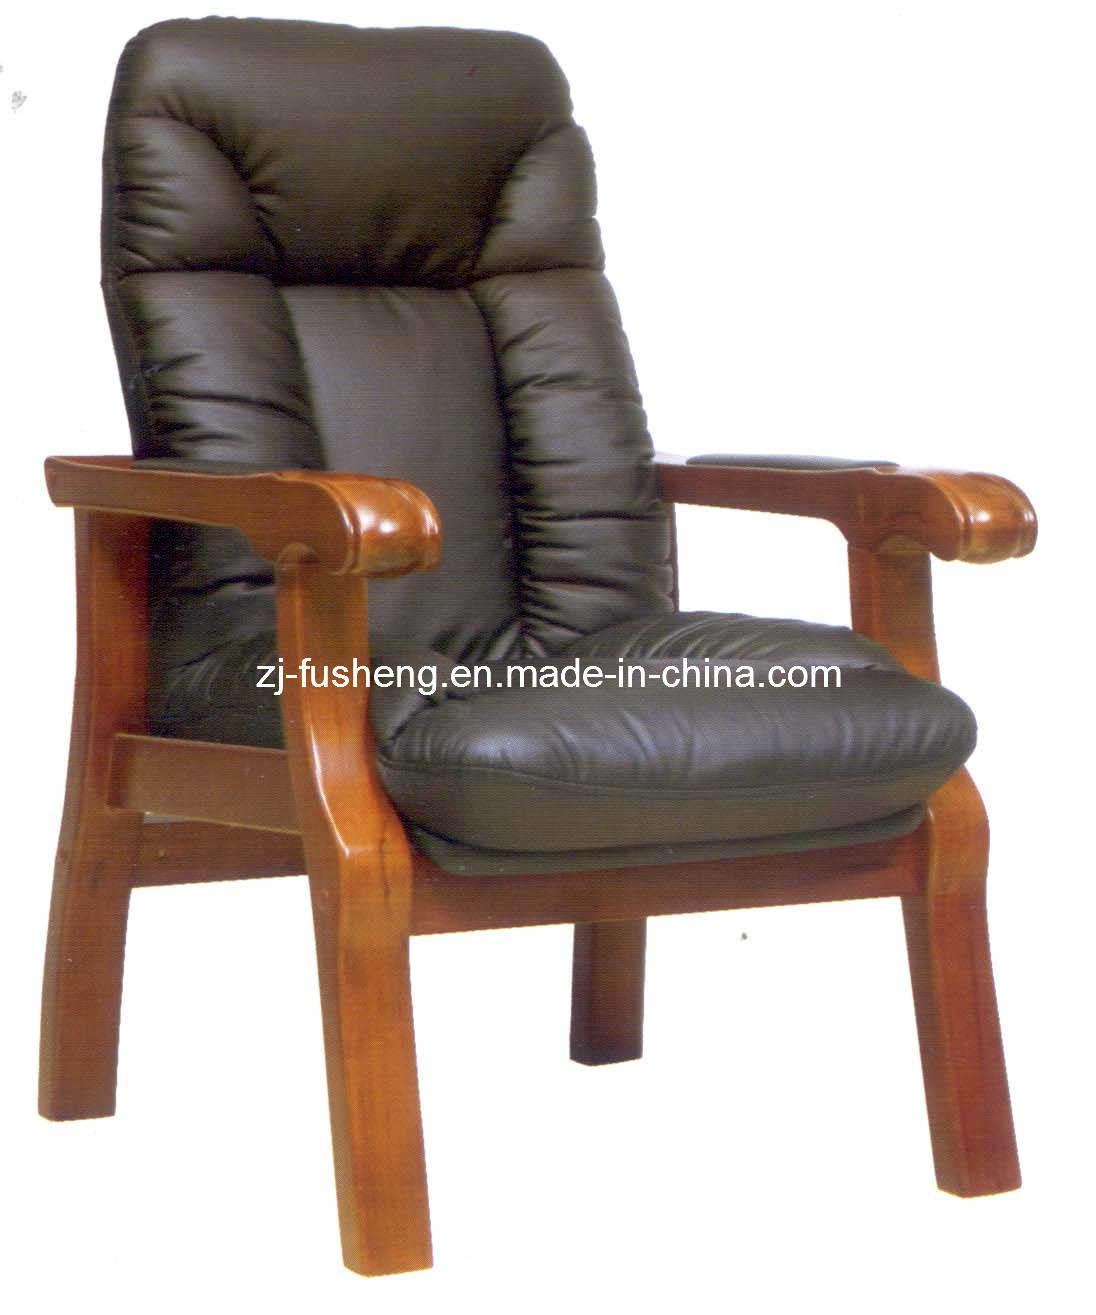 Marvelous photograph of  Wooden Metting Chair (Y8656) China Wooden Chair Metting Chair with #9E5C2D color and 1096x1315 pixels